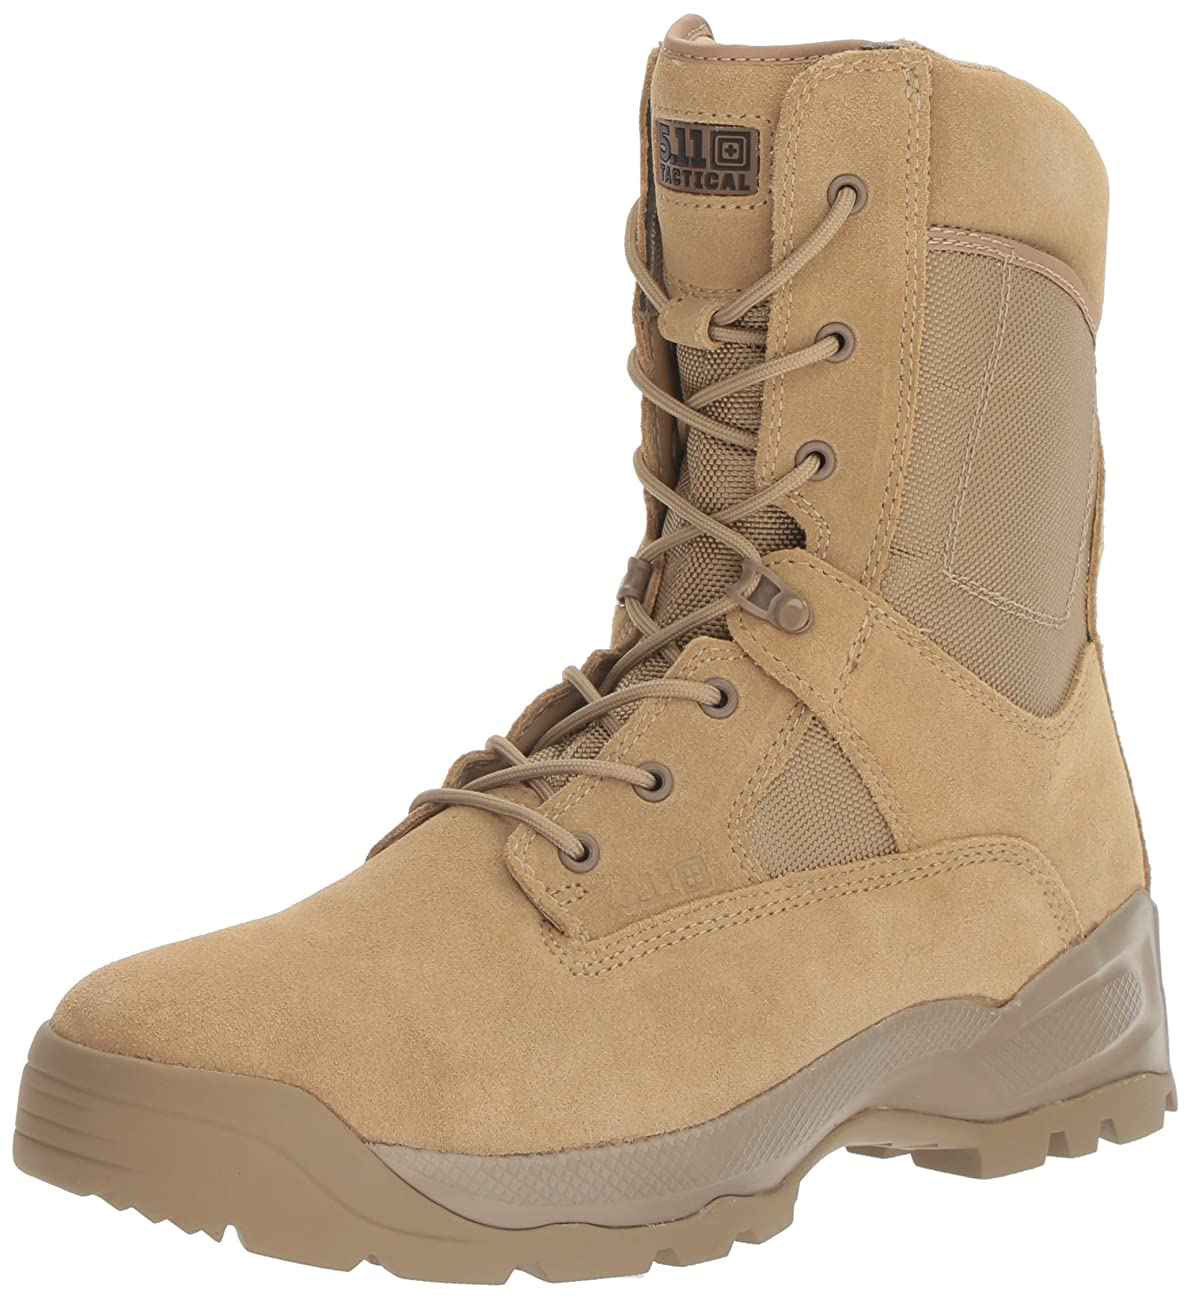 5.11 ATAC Jungle Boots for Men, Combat Boots for Tactical Military Use, style 12001